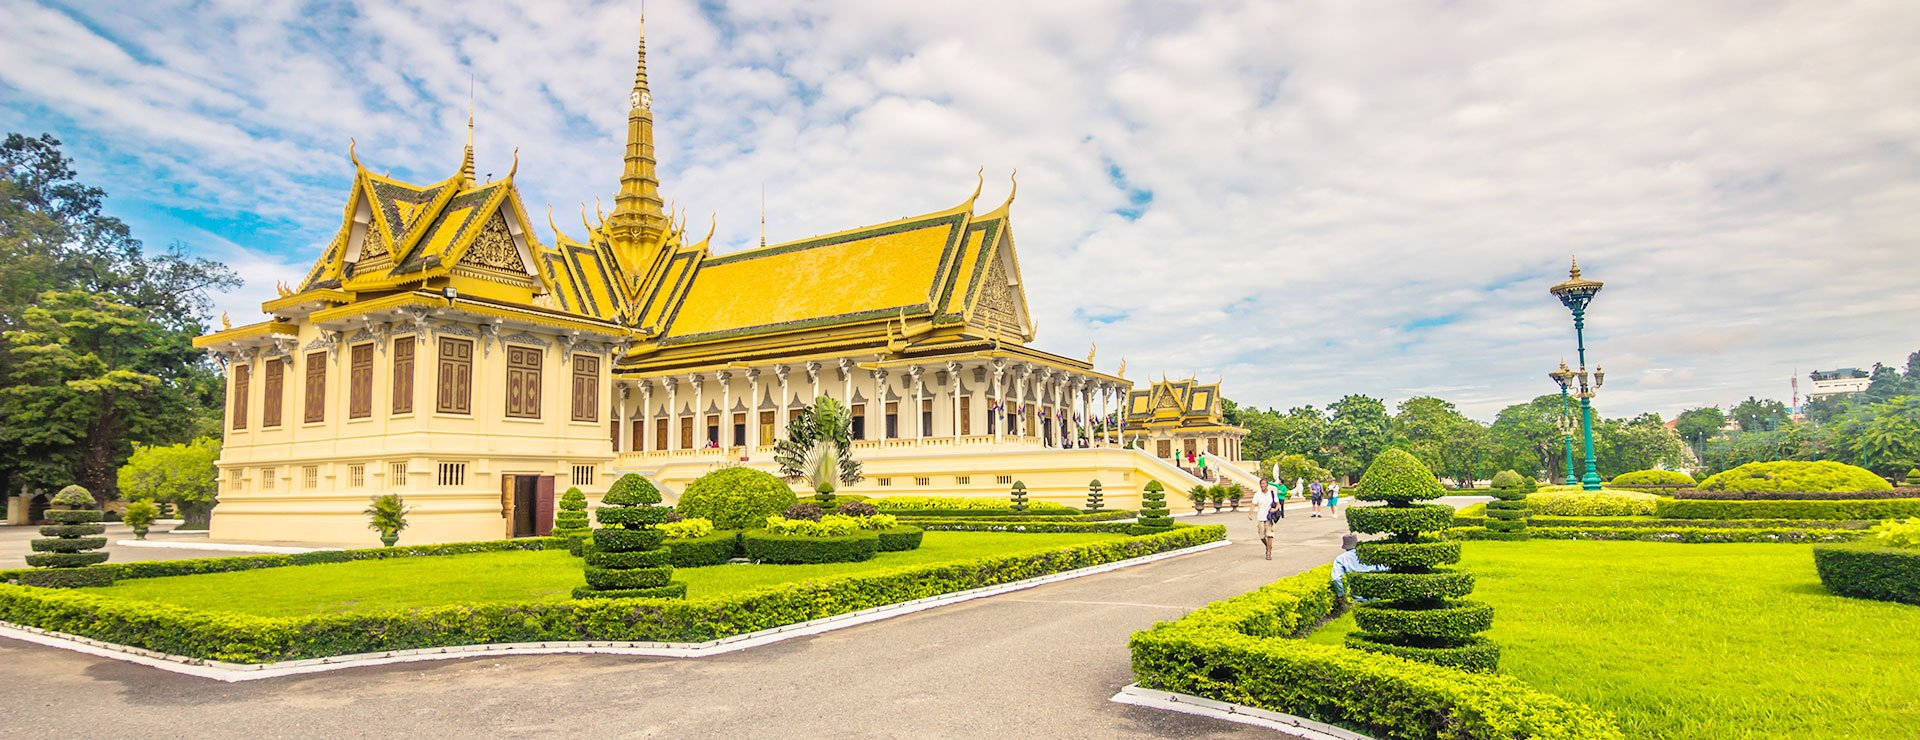 Useful Things You Need To Know To Travel Safely In Cambodia